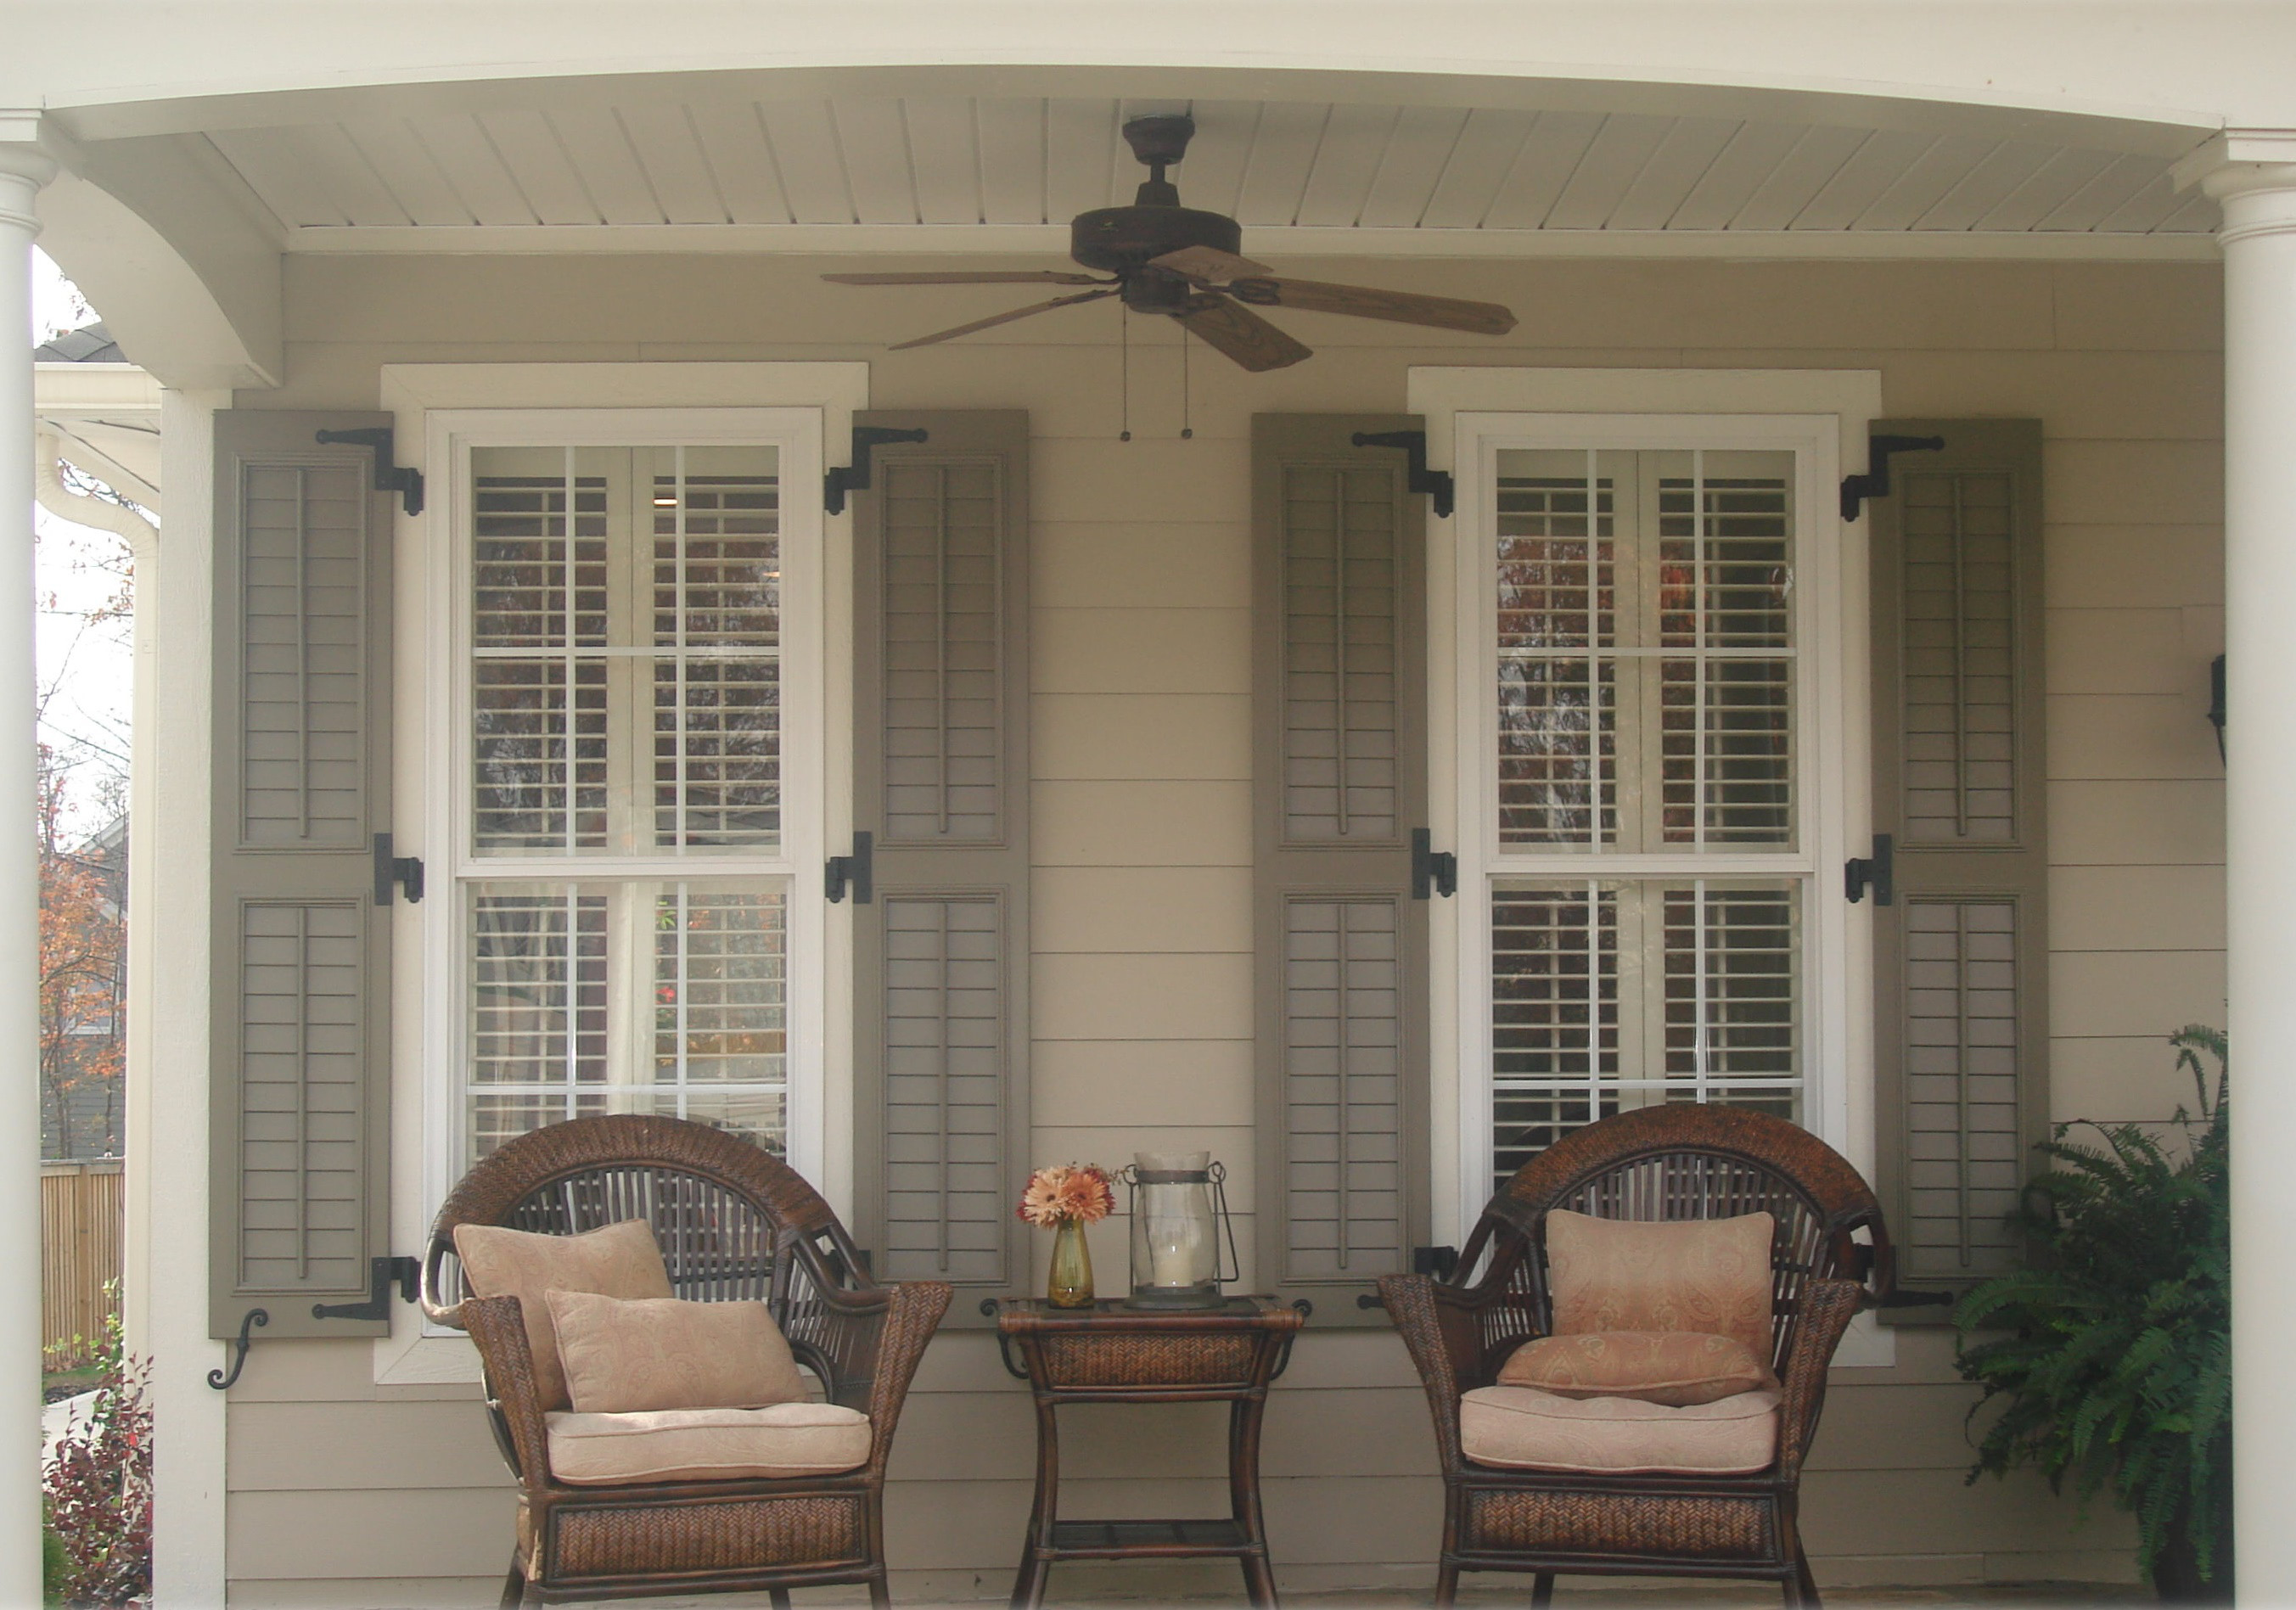 VIEW IN GALLERY Rustic Exterior Window Shutters Installation Ideas